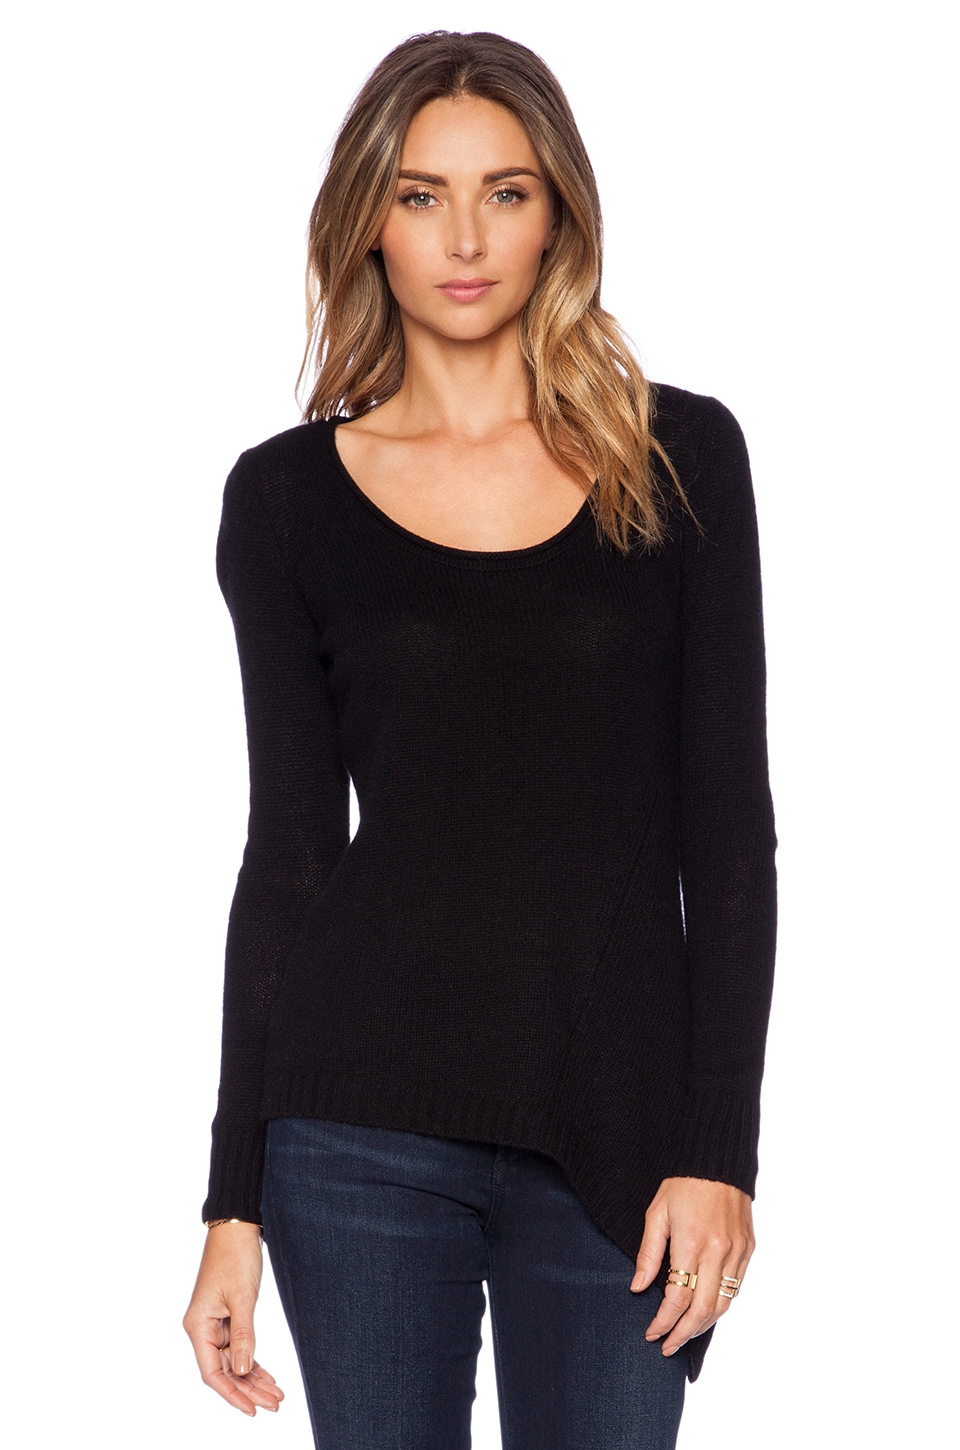 Autumn Cashmere Asymmetric Scoop Neck Sweater in Black